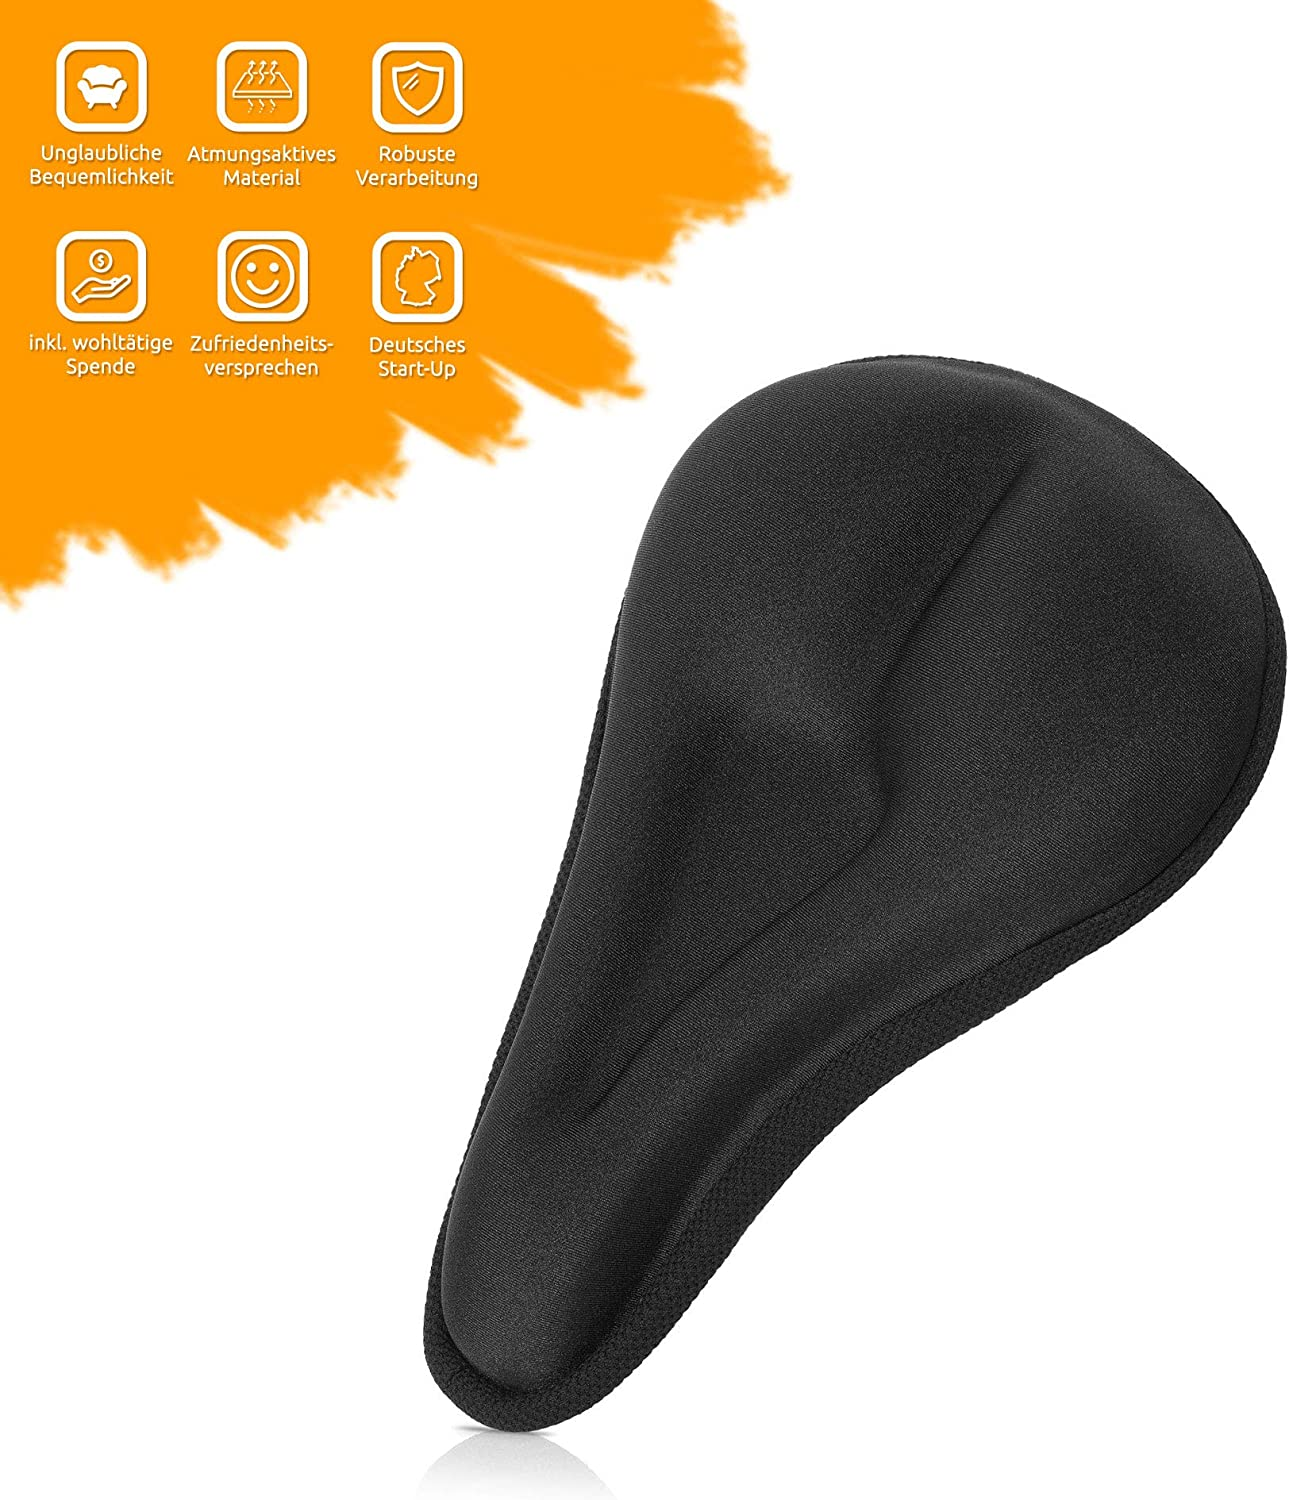 Bicycle Saddle Cover Slim /& Padded for Men and Women MR Goods/® Introductory Price Bicycle Saddle Gel Cover Black Gel Saddle Cover Comfortable and Soft